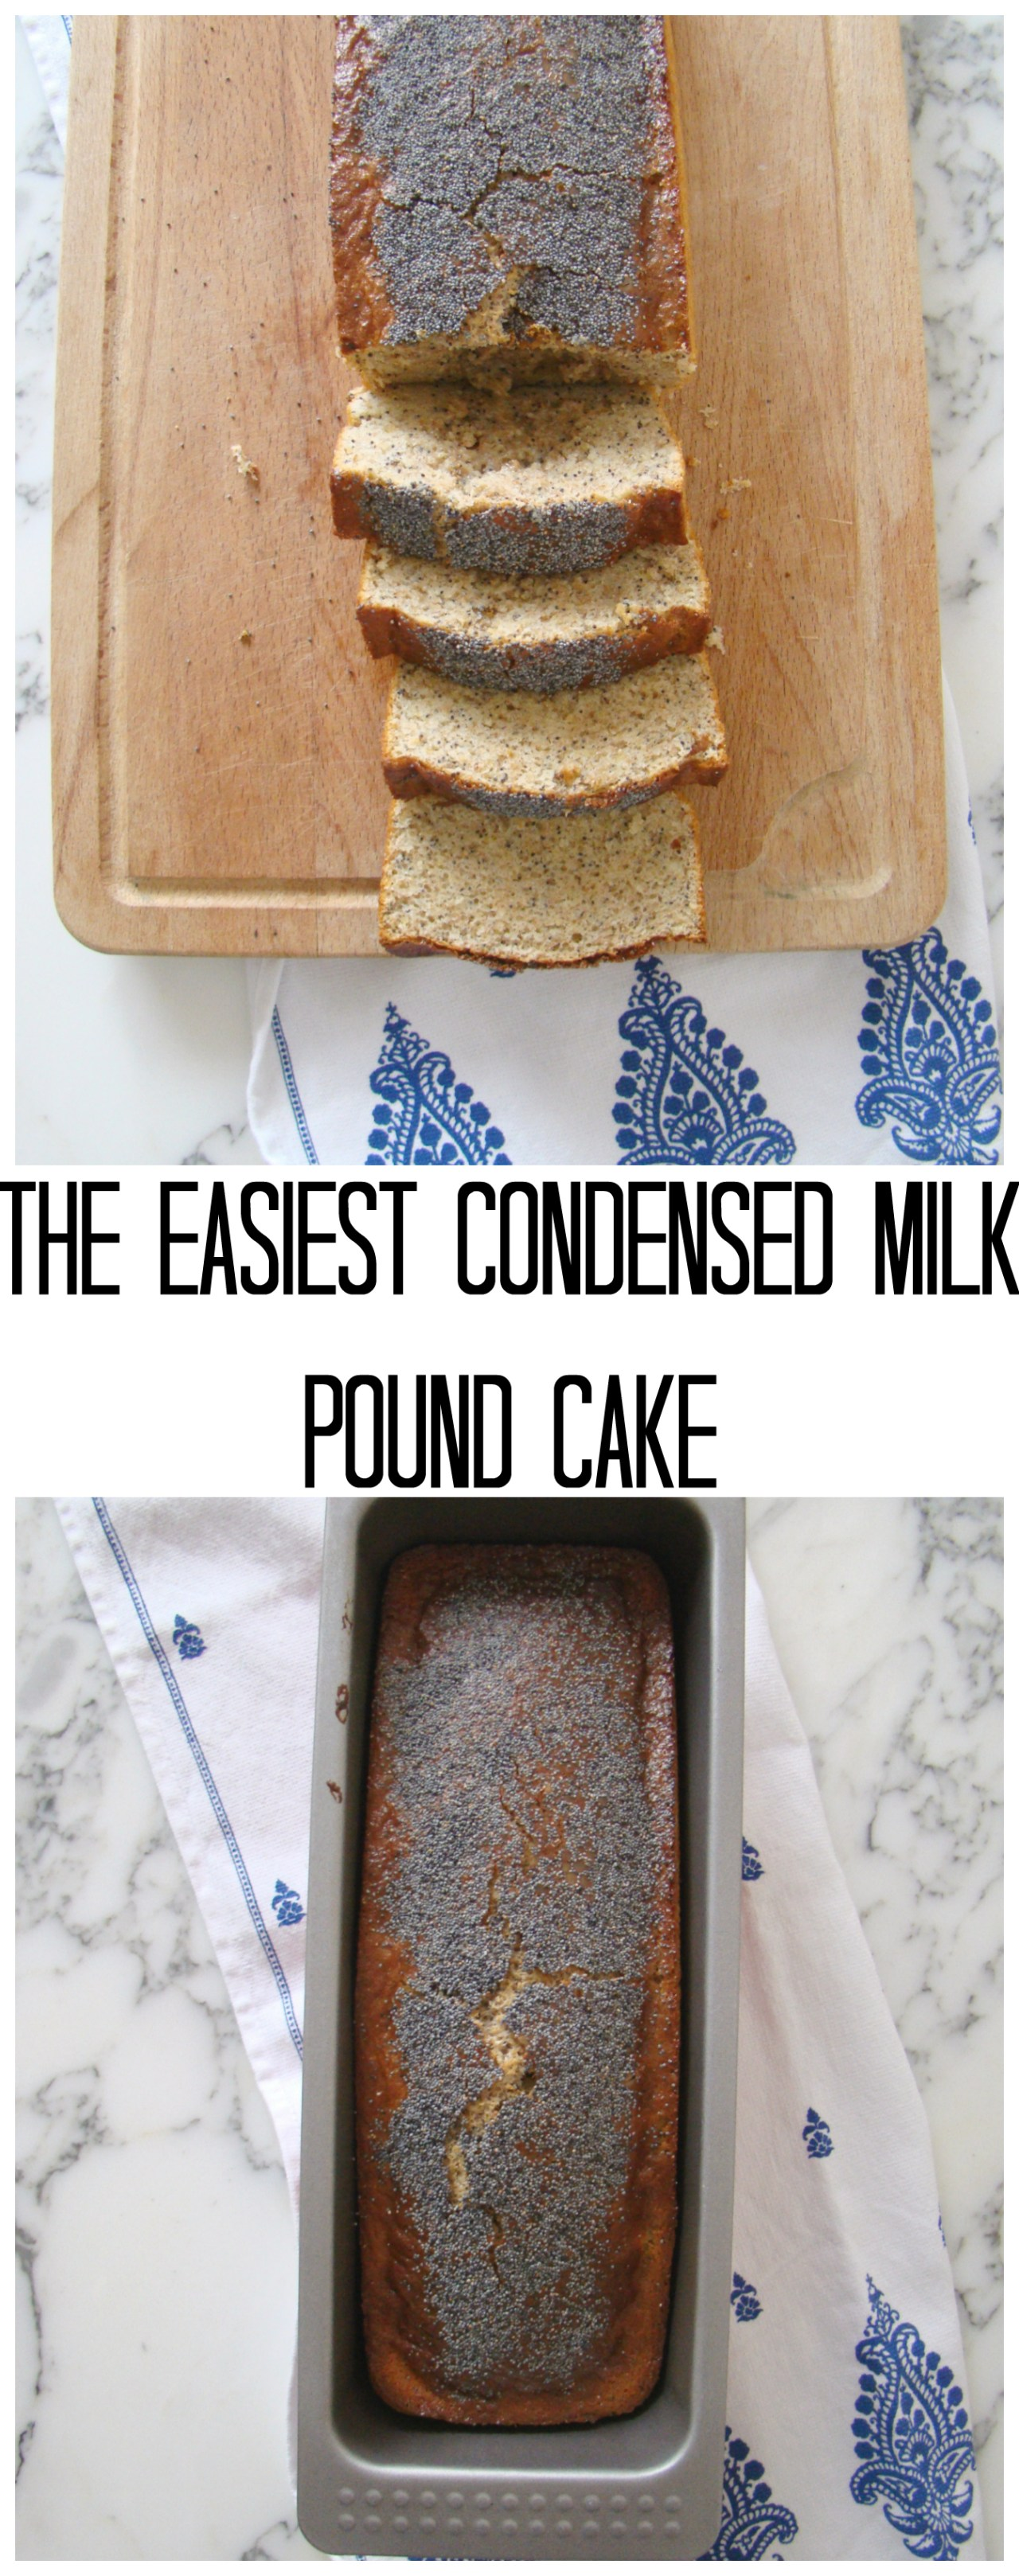 The Easiest Condensed Milk Pound Cake